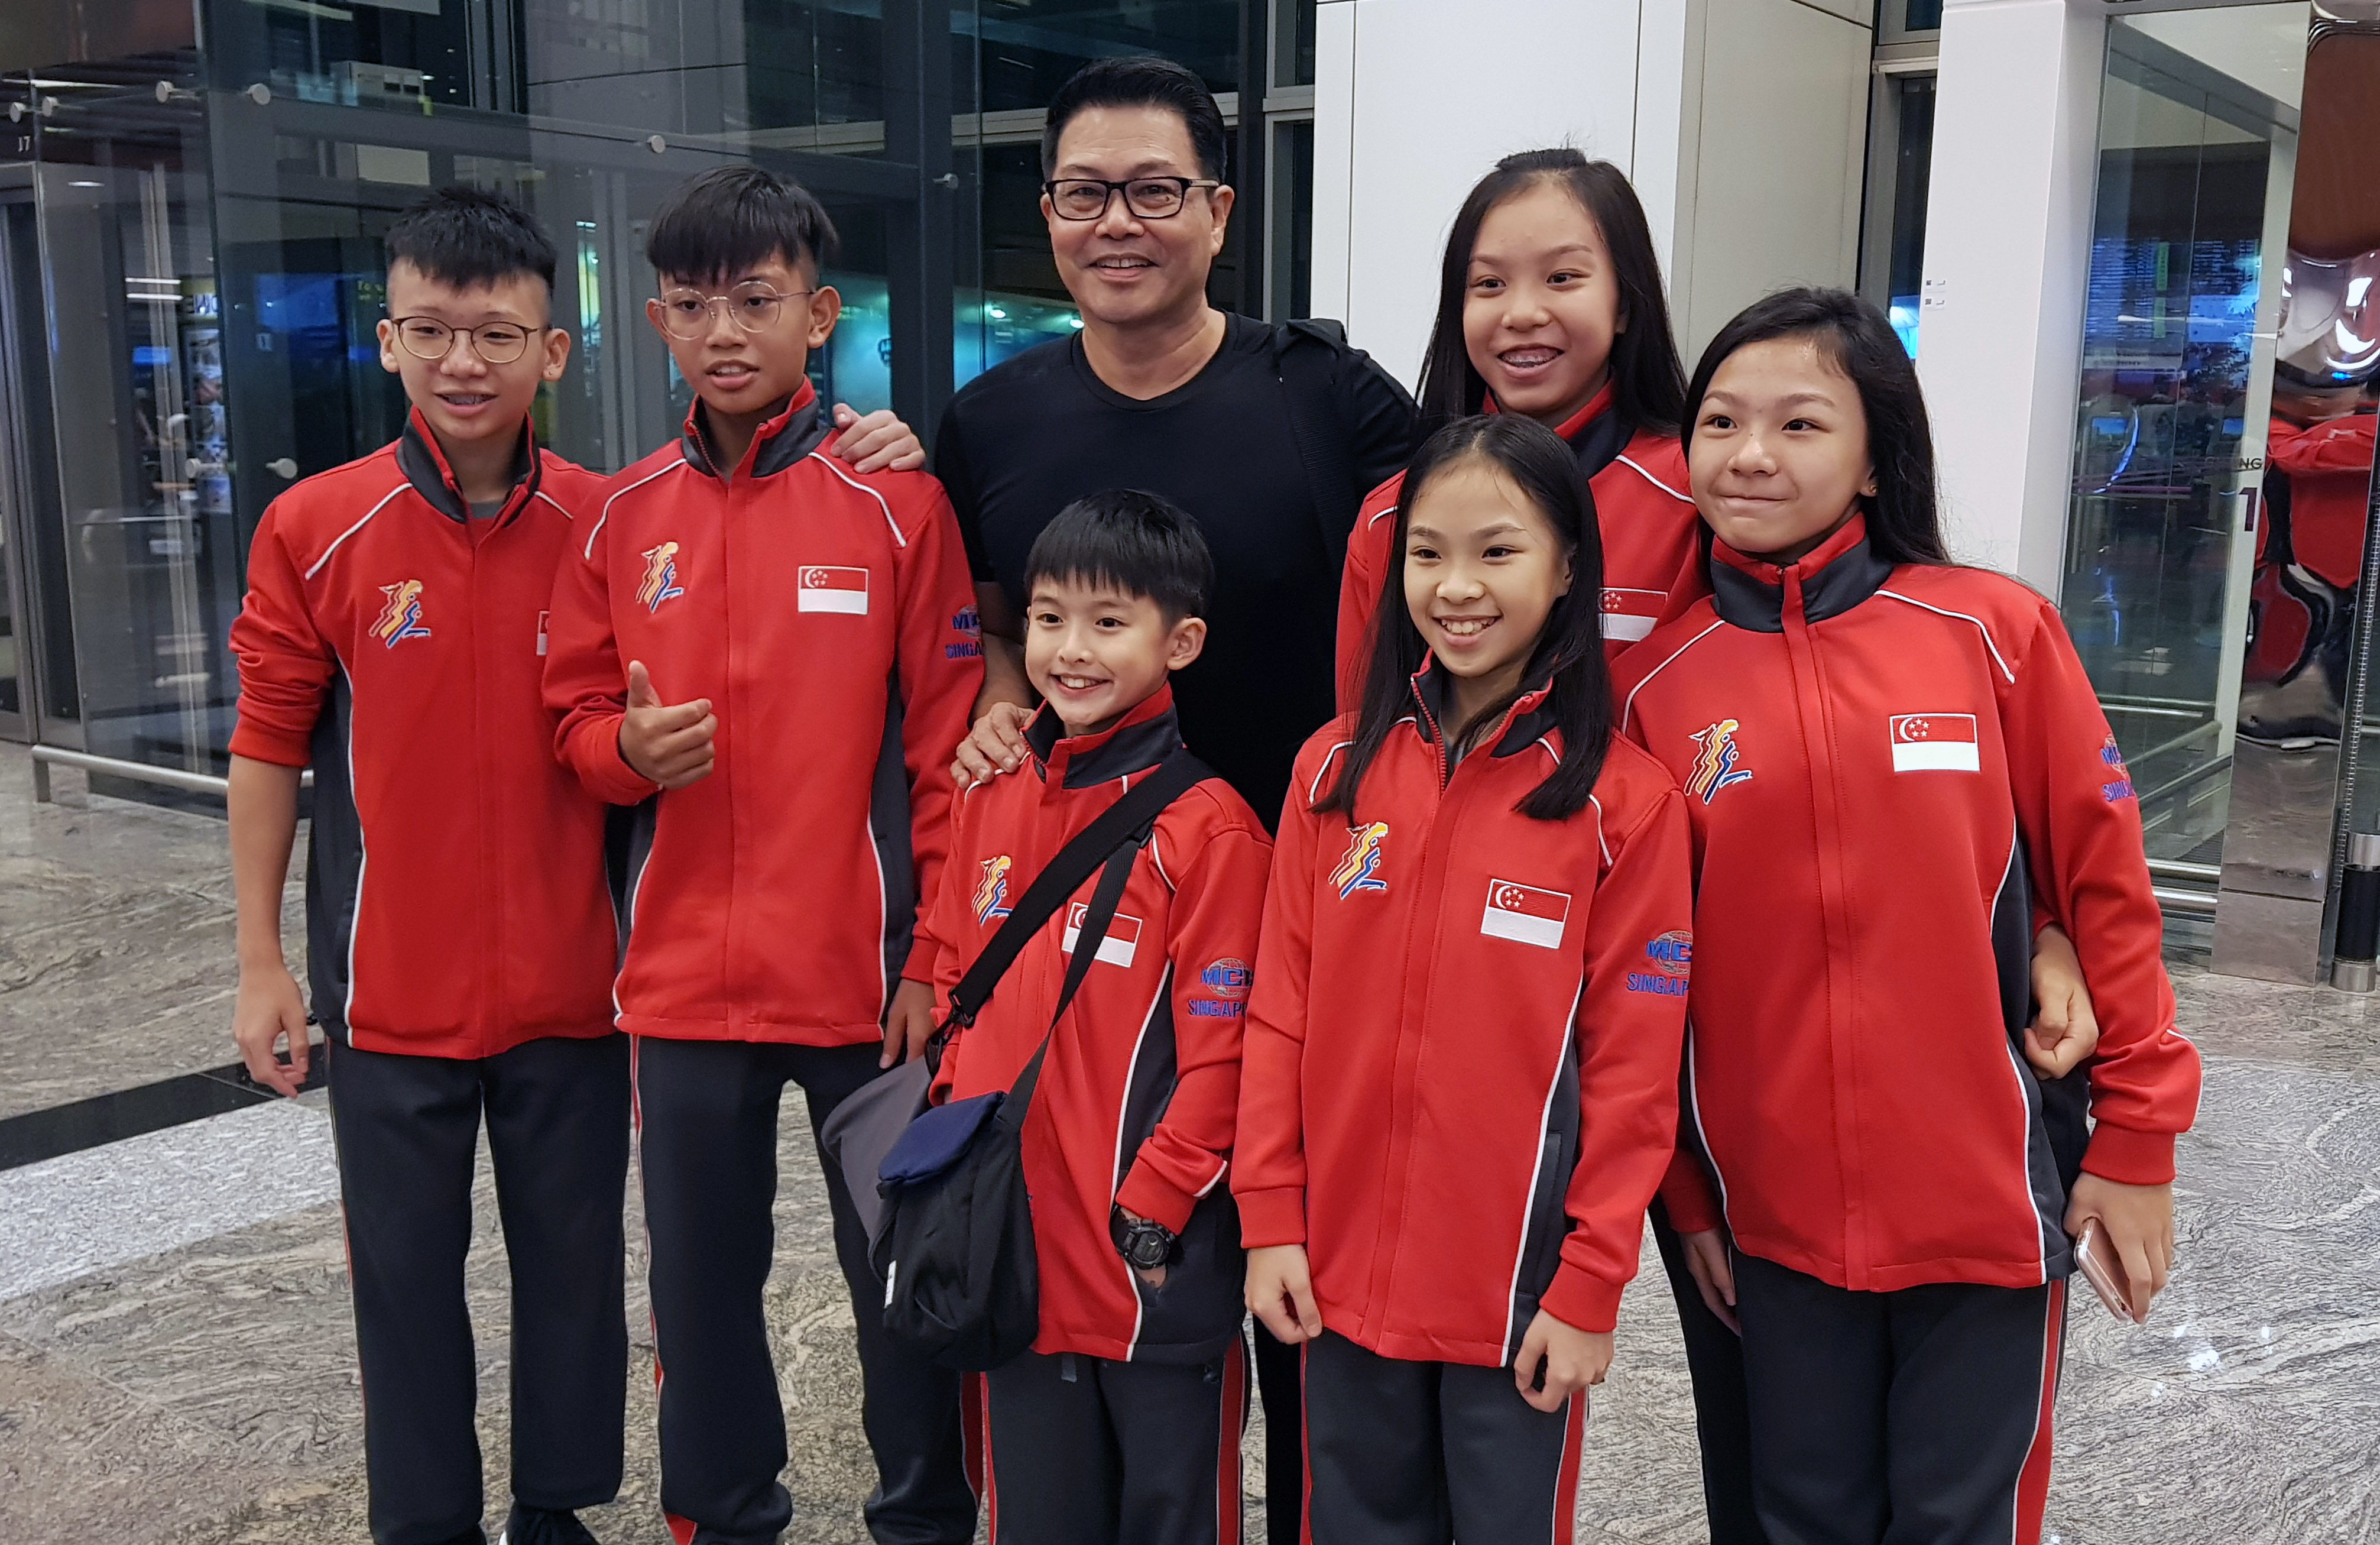 Xuan Sports athletes with Coach Winston